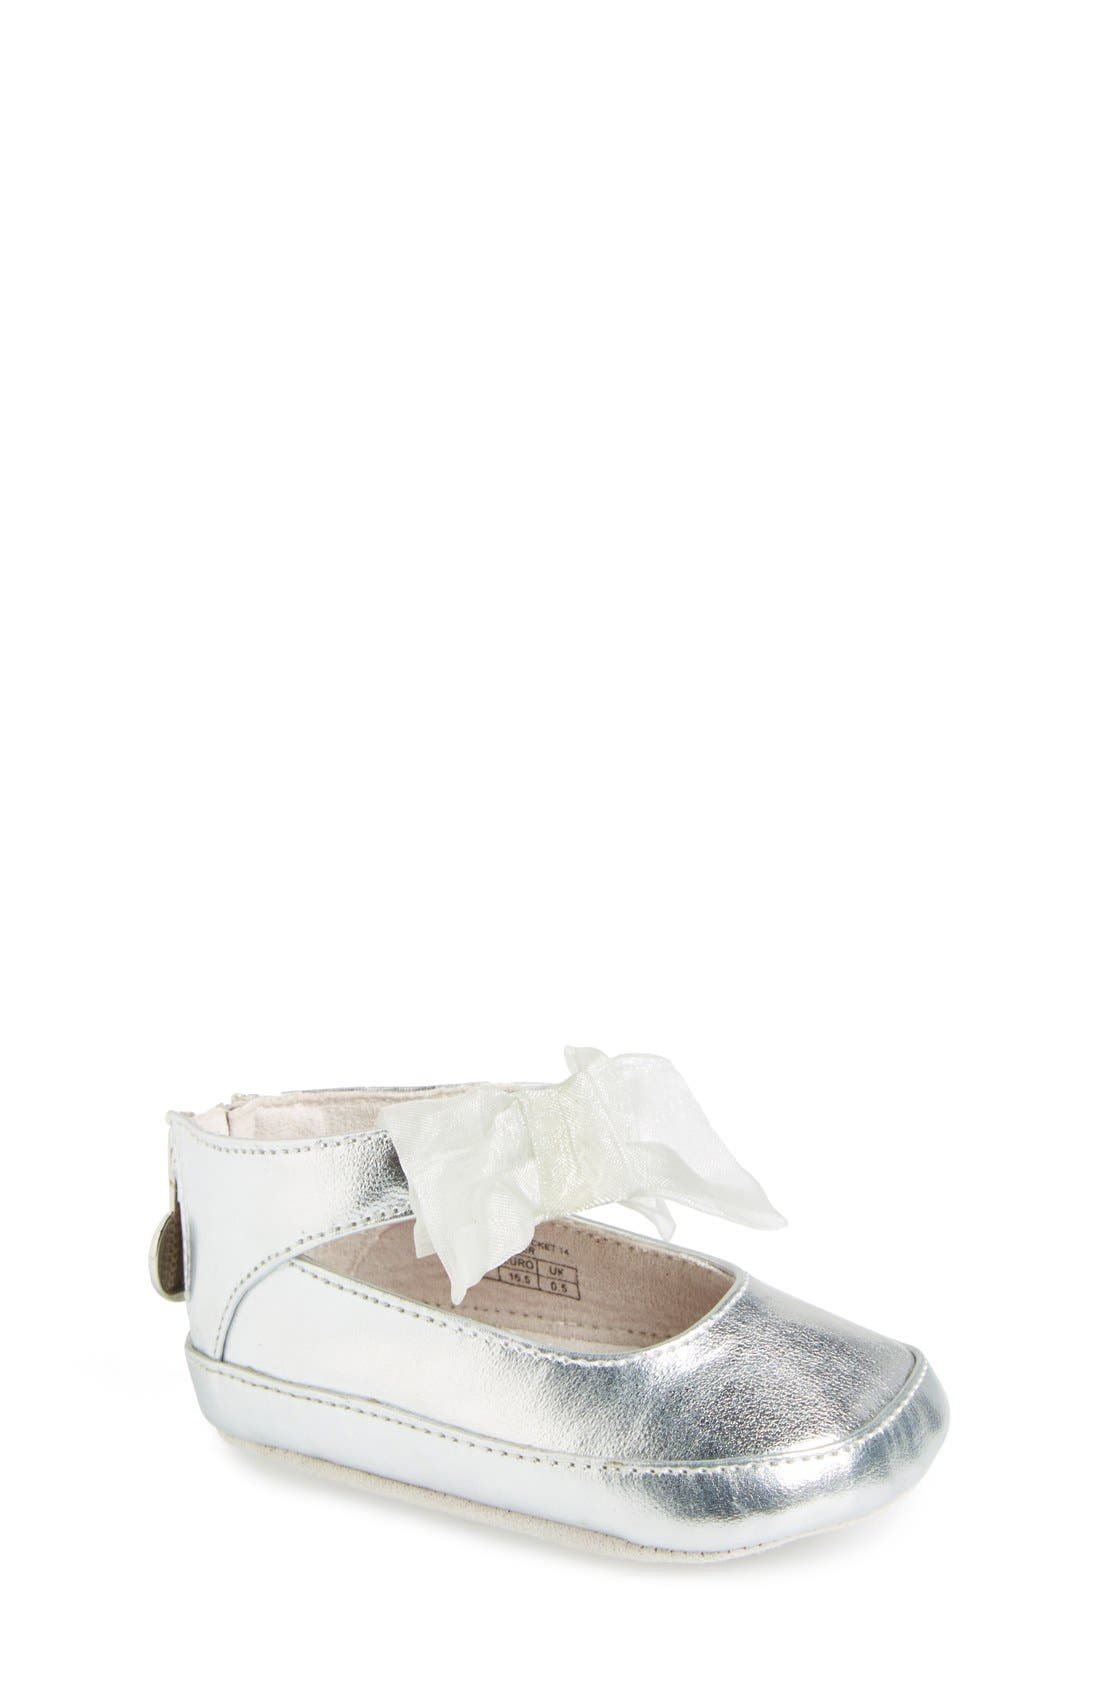 STUART WEITZMAN Baby Nantucket Crib Shoe